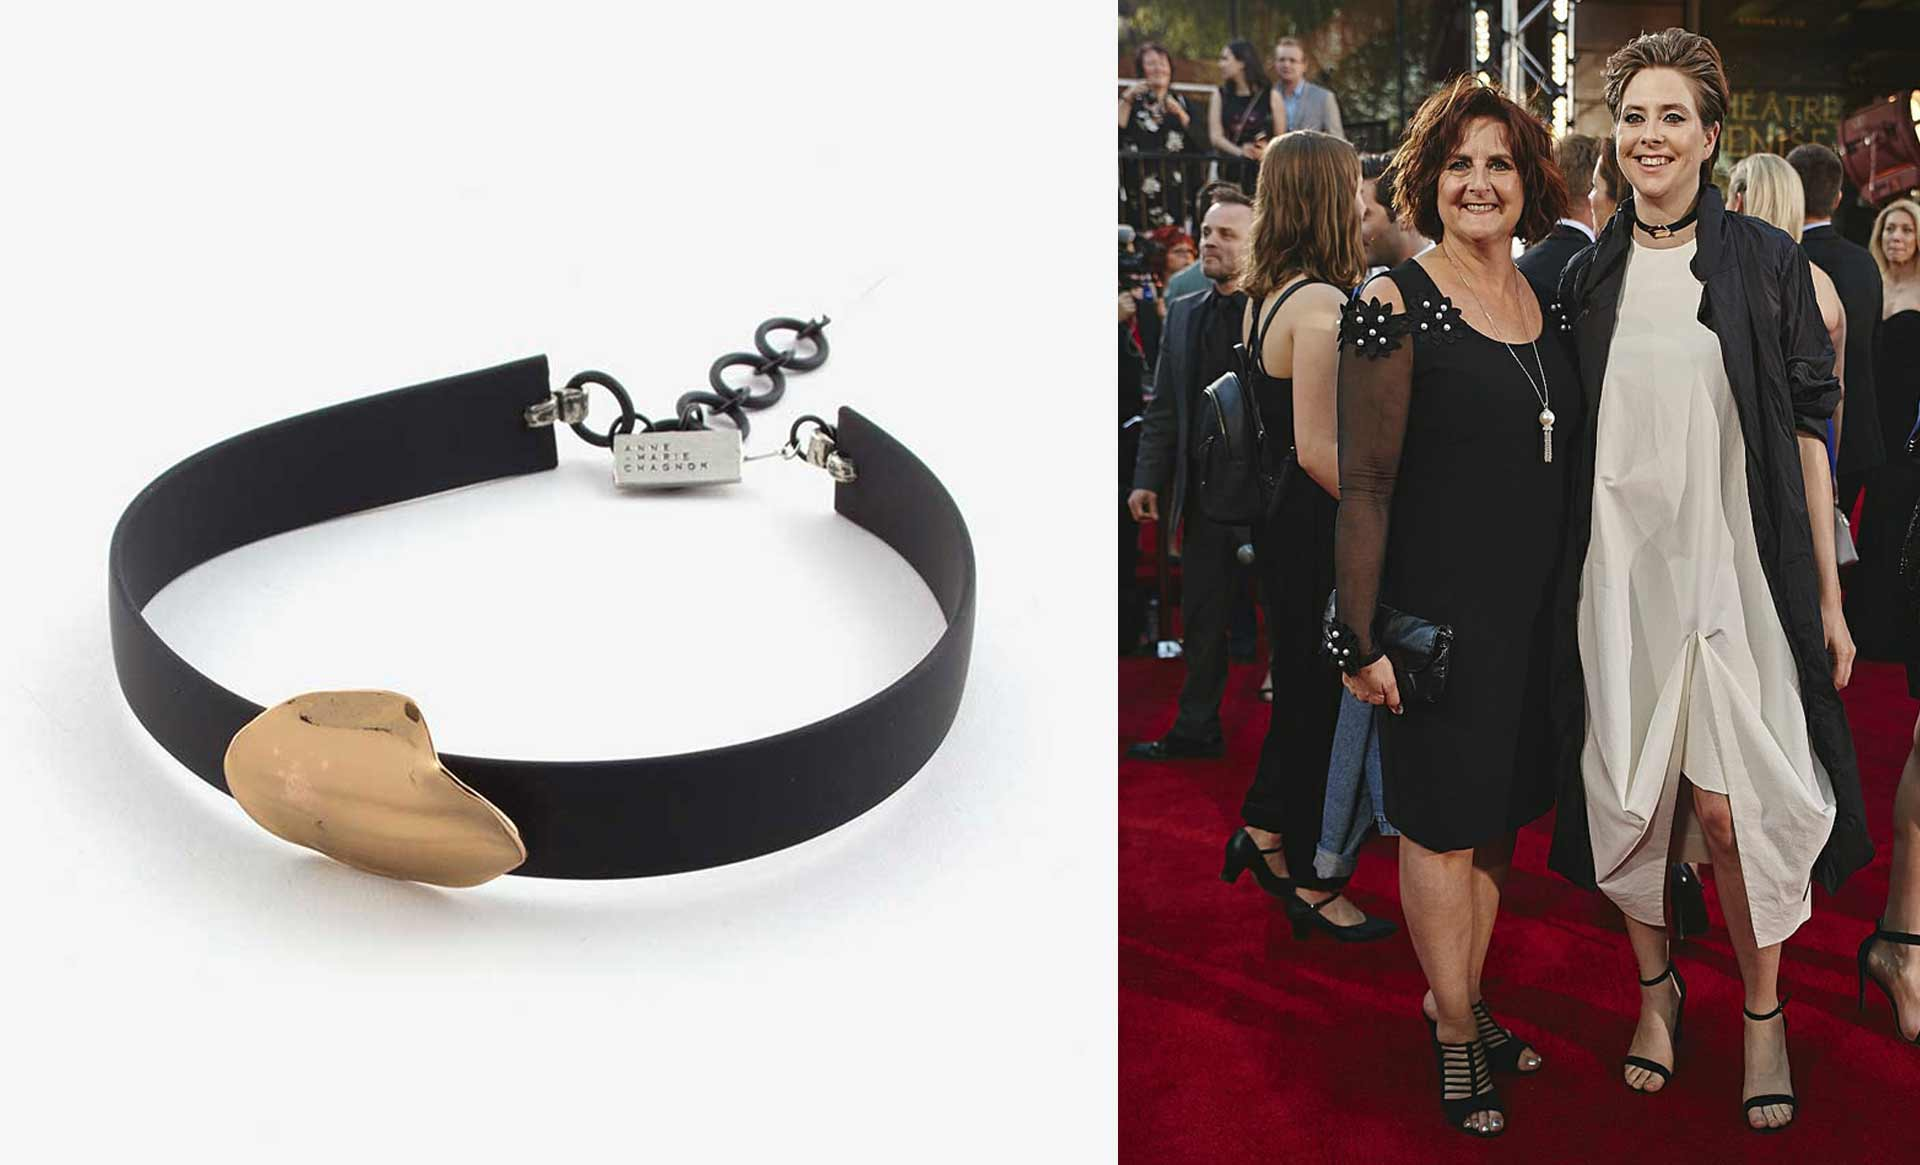 Eve Landry wears the necklace Emin for the Artis Gala